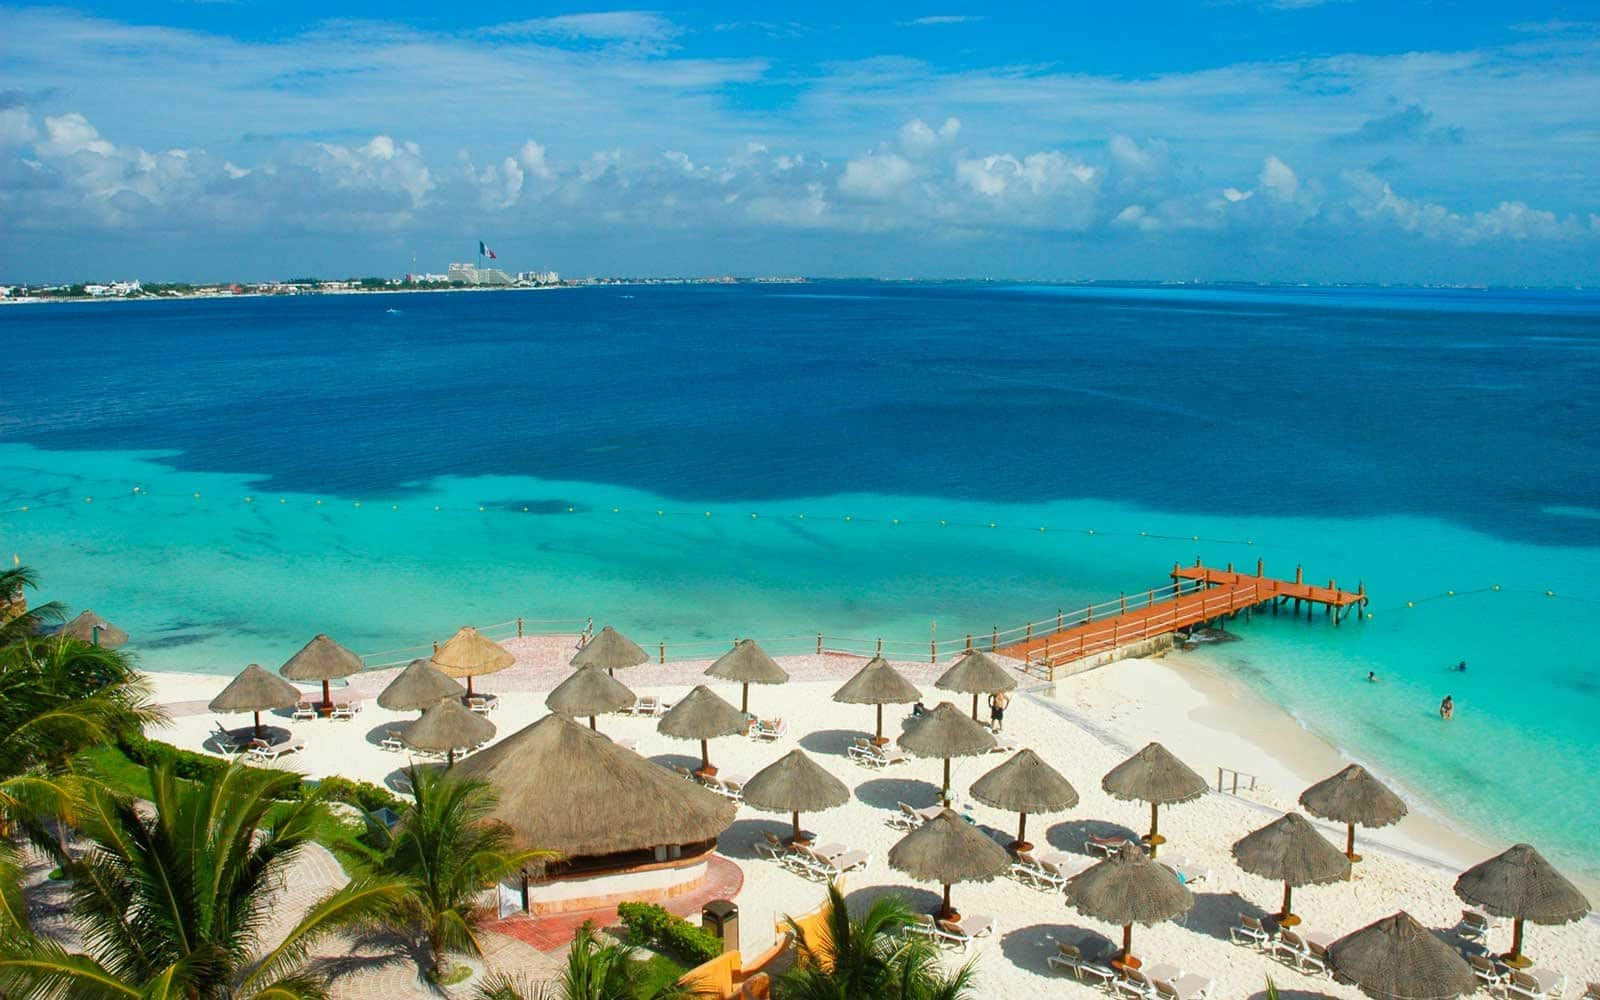 Travel Aug-Nov 2020:  New York to Cancun Mexico $135 RT Nonstop Airfares on Aeromexico / Delta Airlines BE